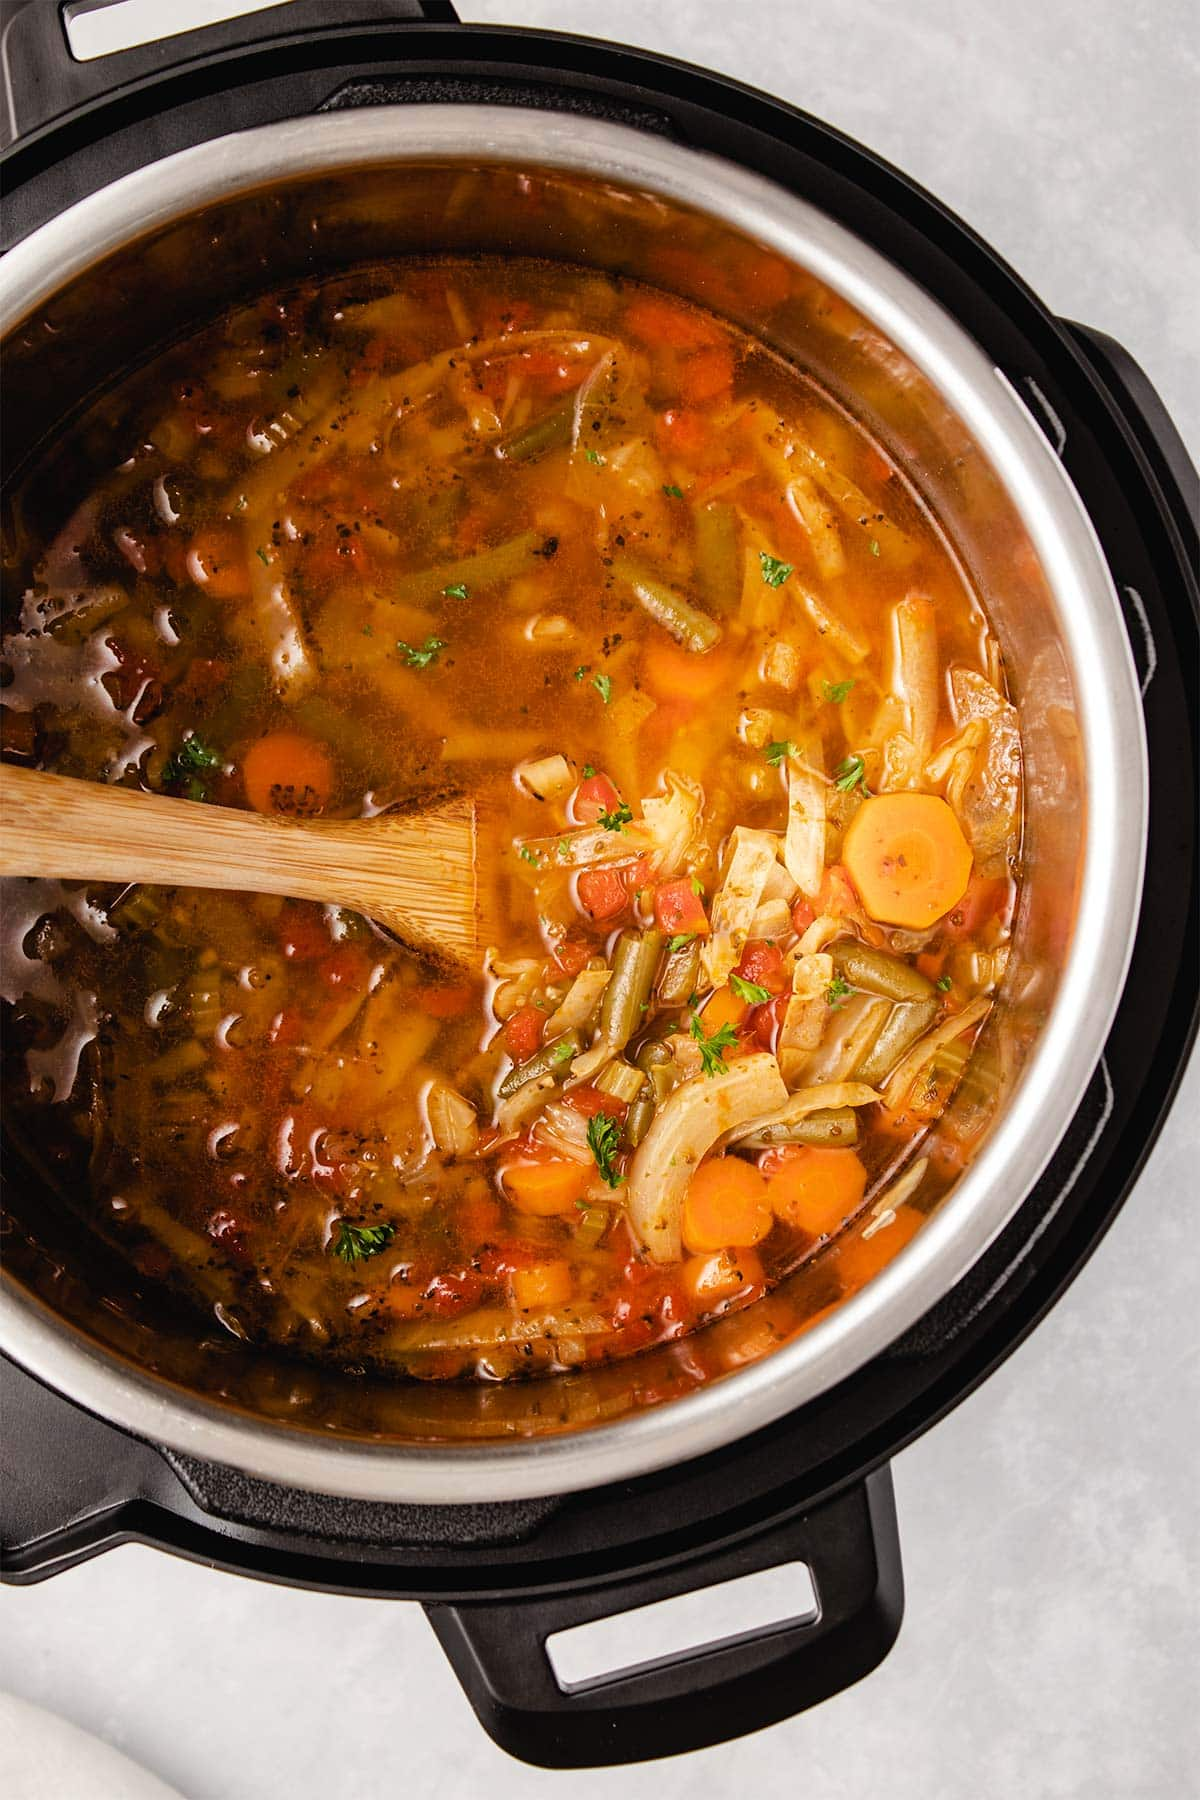 Cabbage Soup in an Instant Pot being stirred with a wooden spoon.